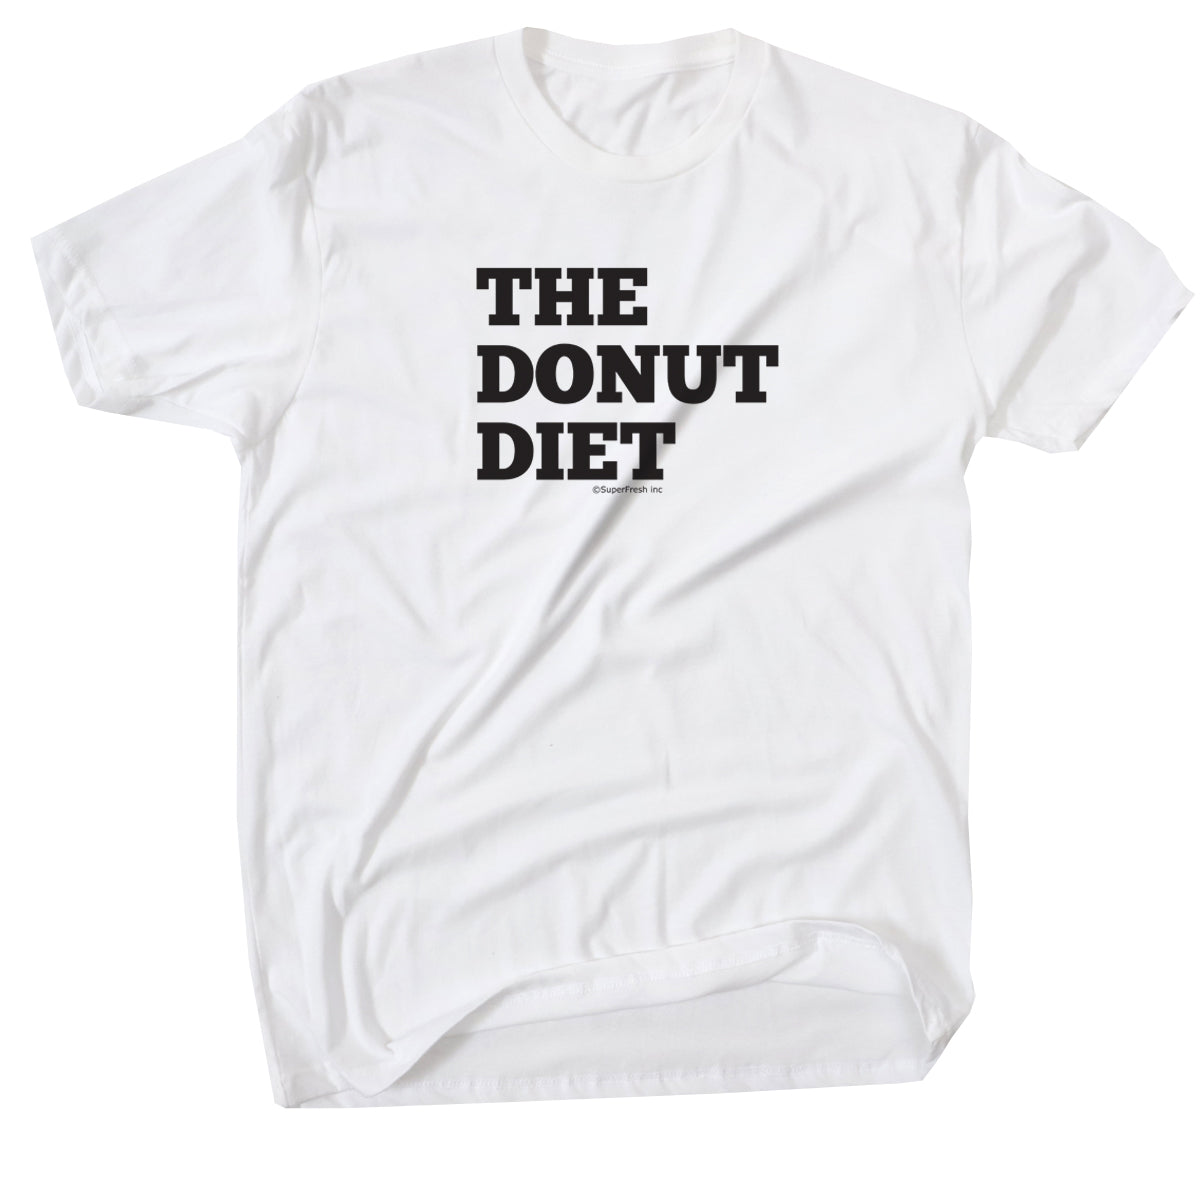 The Donut Diet<br> [Tee]